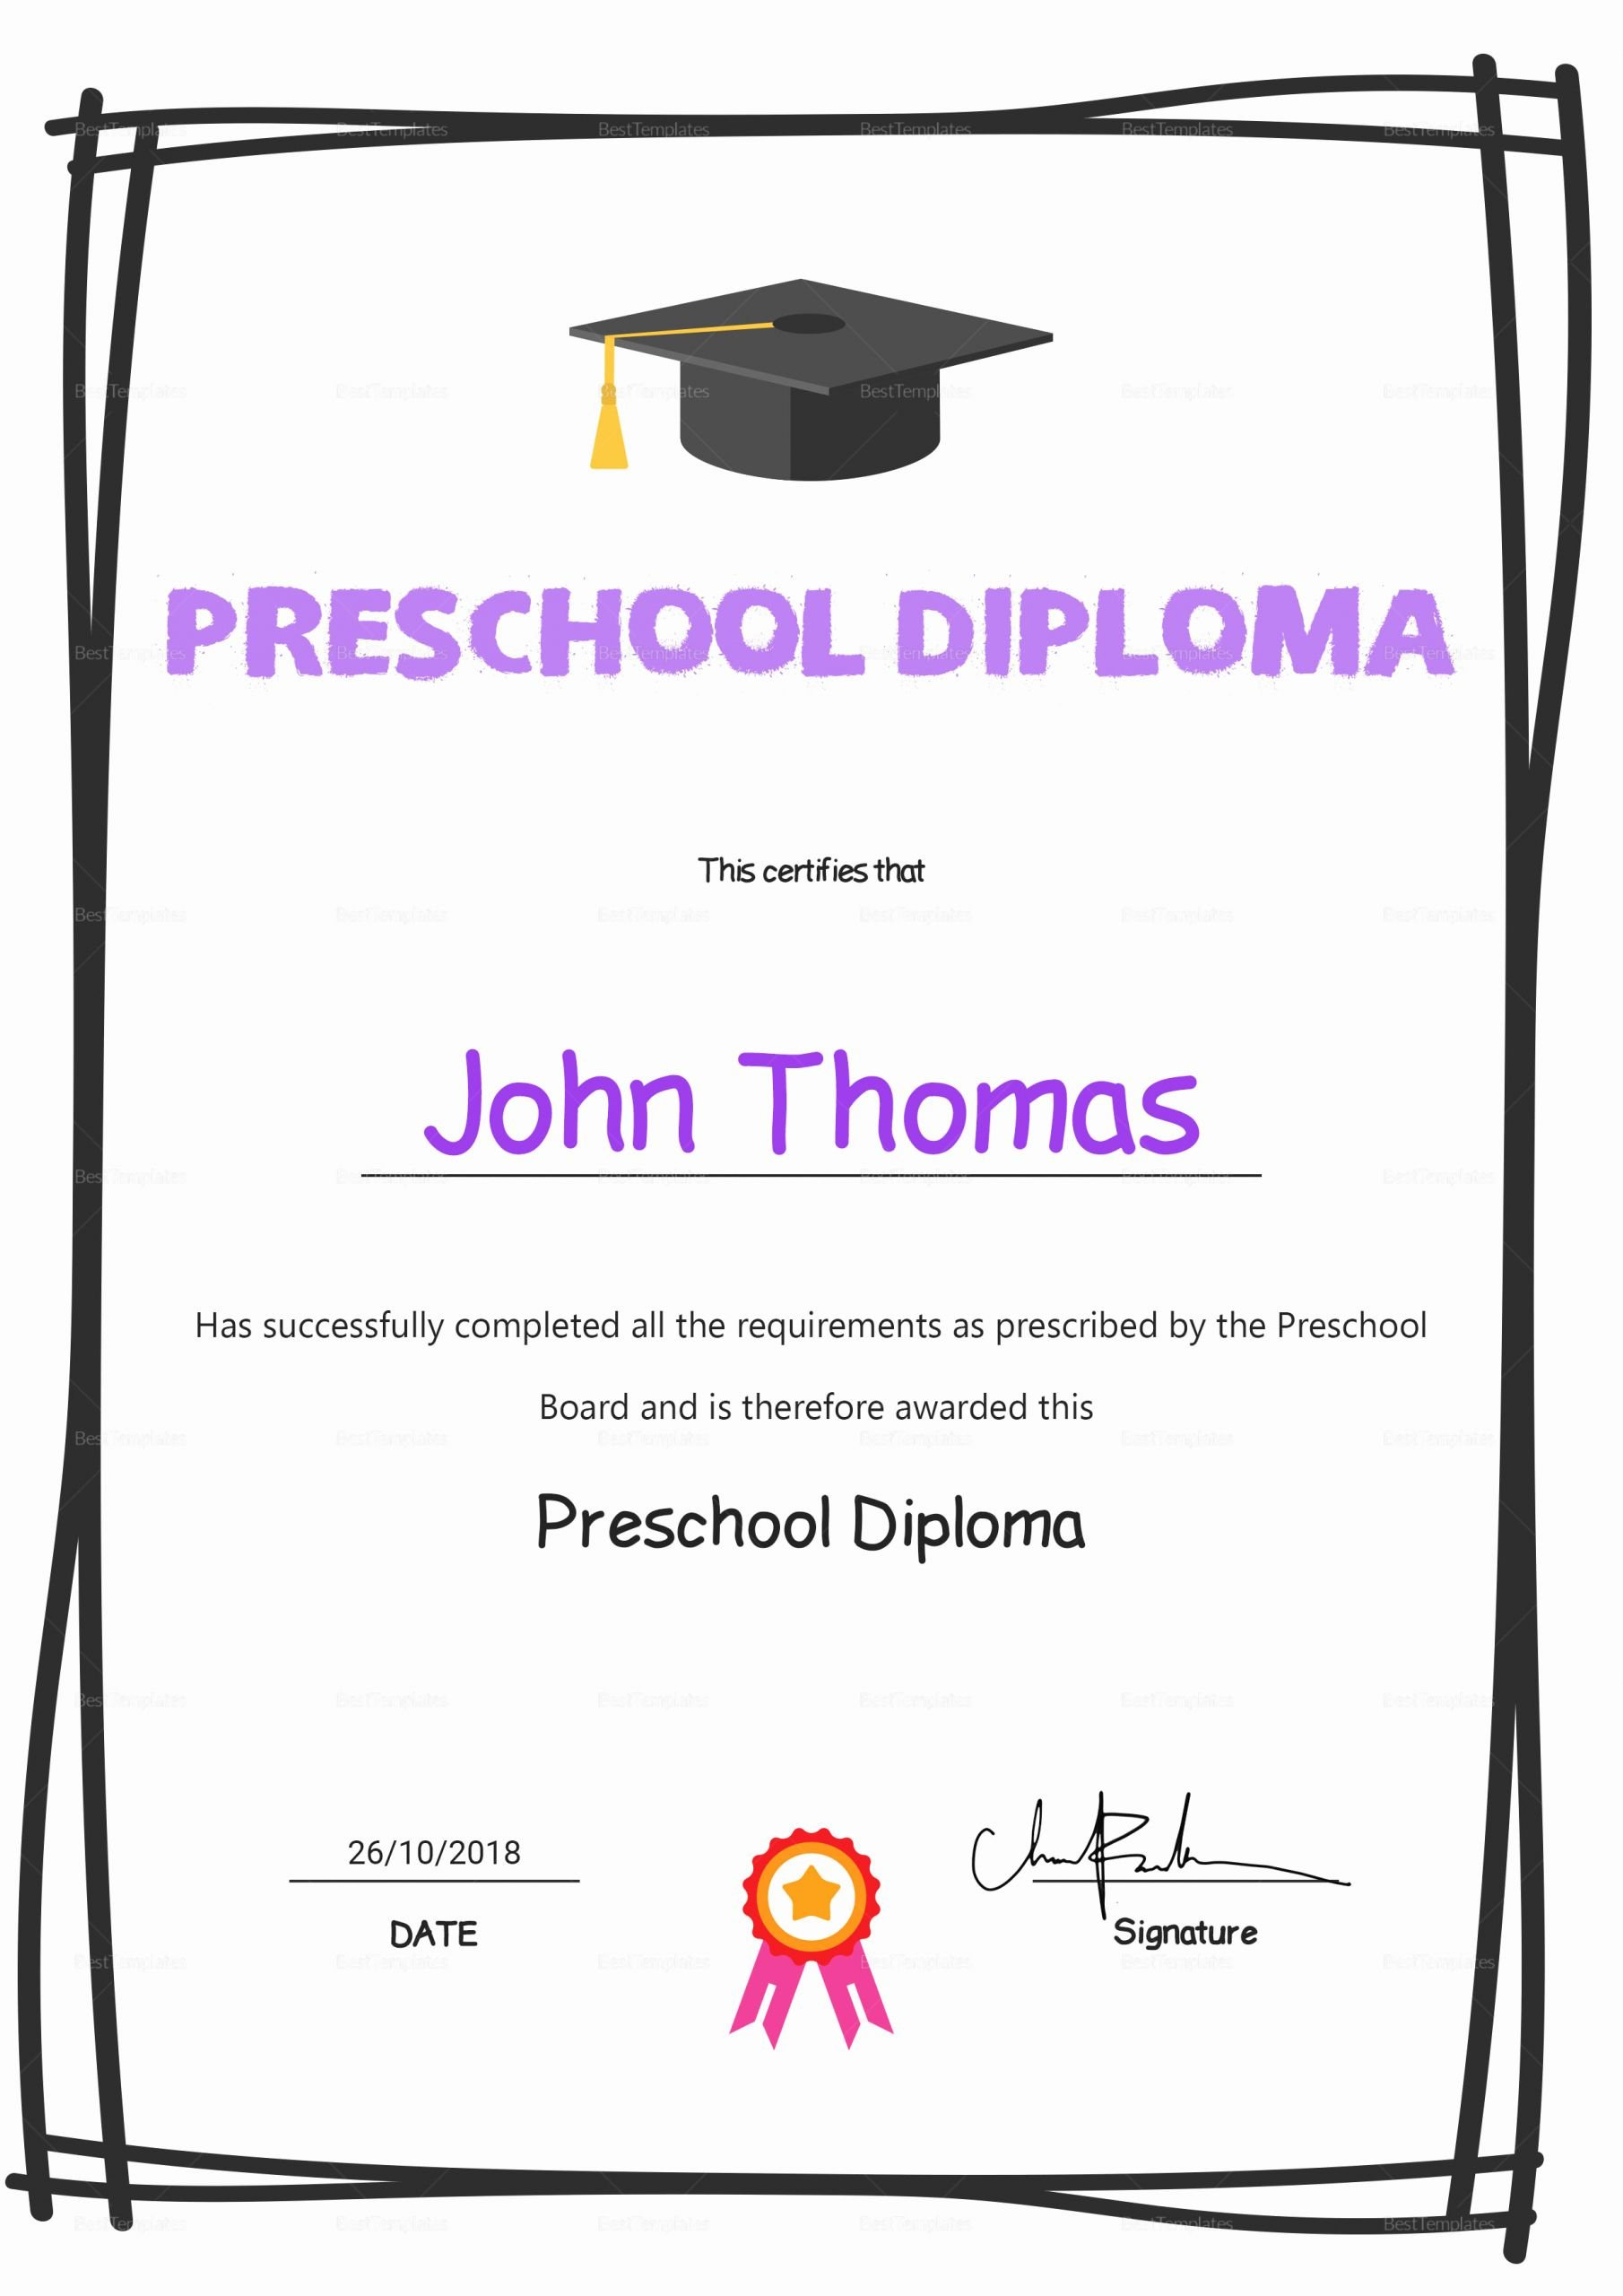 Preschool Completion Certificate Templates Beautiful Elegant Preschool Diploma Certificate Design Template In